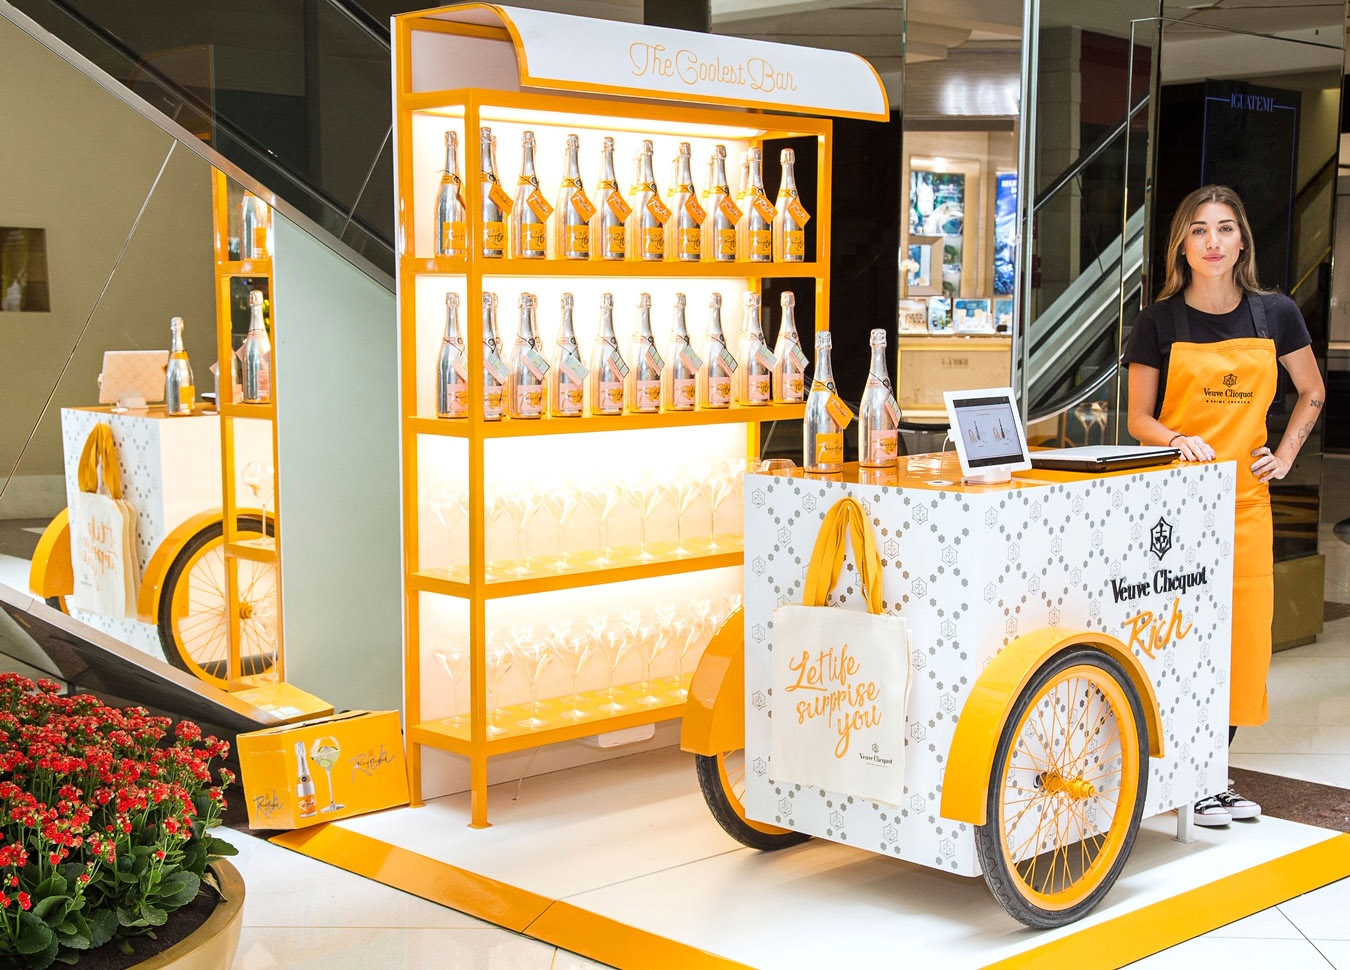 Veuve Clicquot abre pop up store no Shopping IGUATEMI - SP